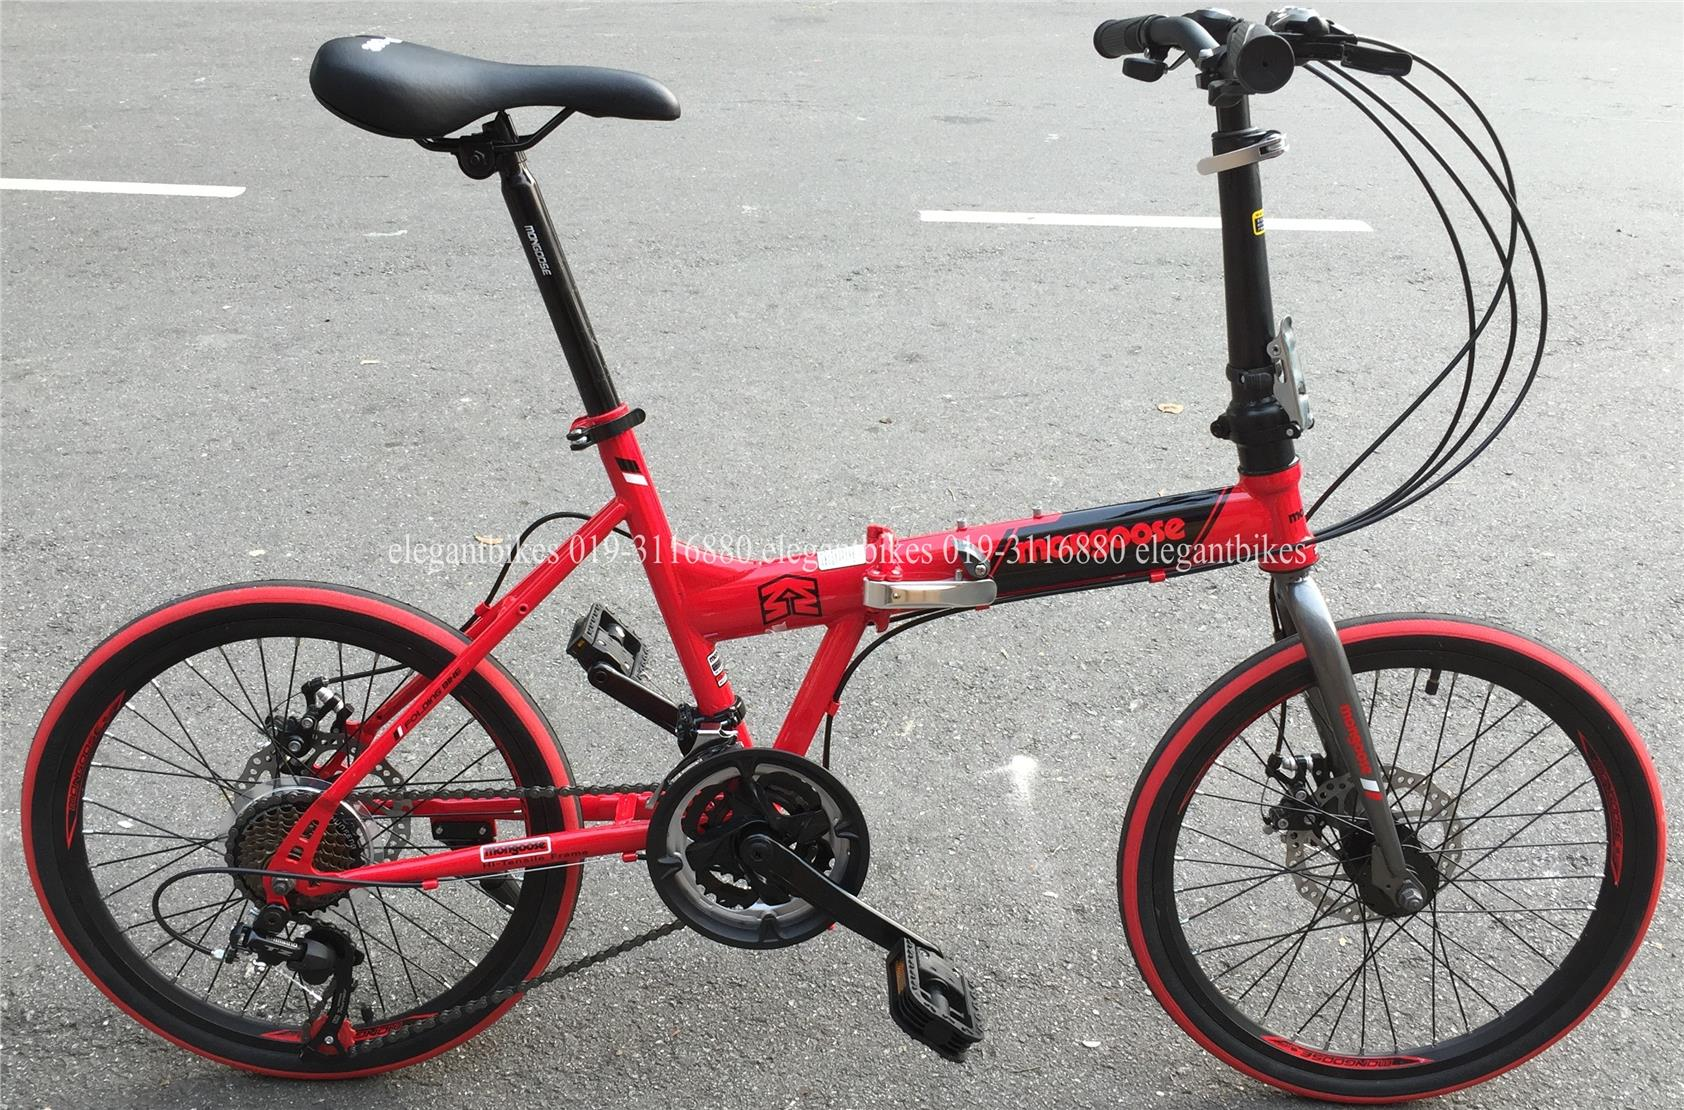 New 2015 Mongoose 21 Speed Foldable End 10 25 2016 8 15 Pm